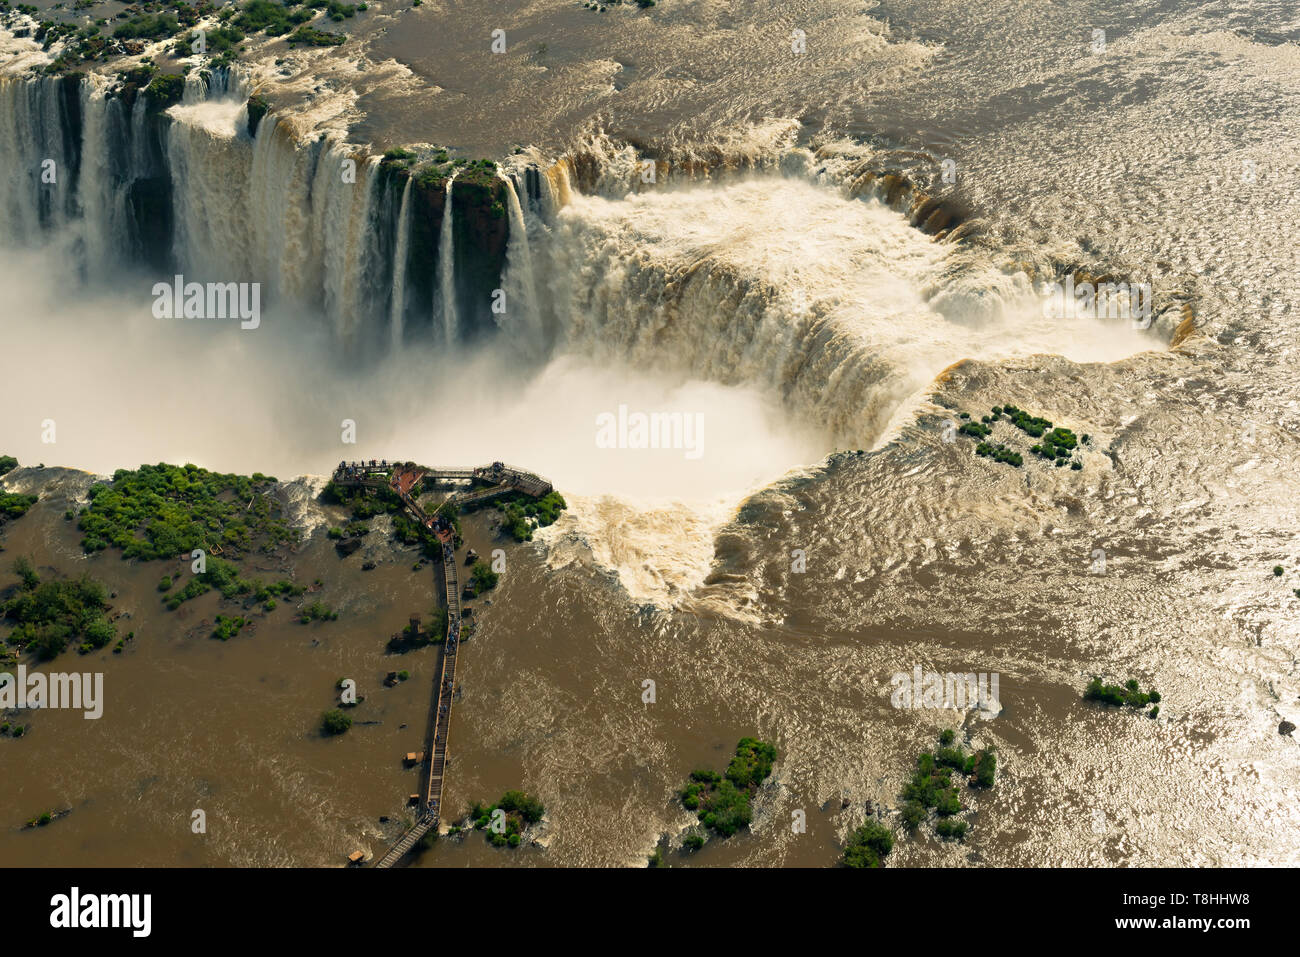 Aerial view of Iguazu Falls in the border of Argentina and Brazil - Stock Image